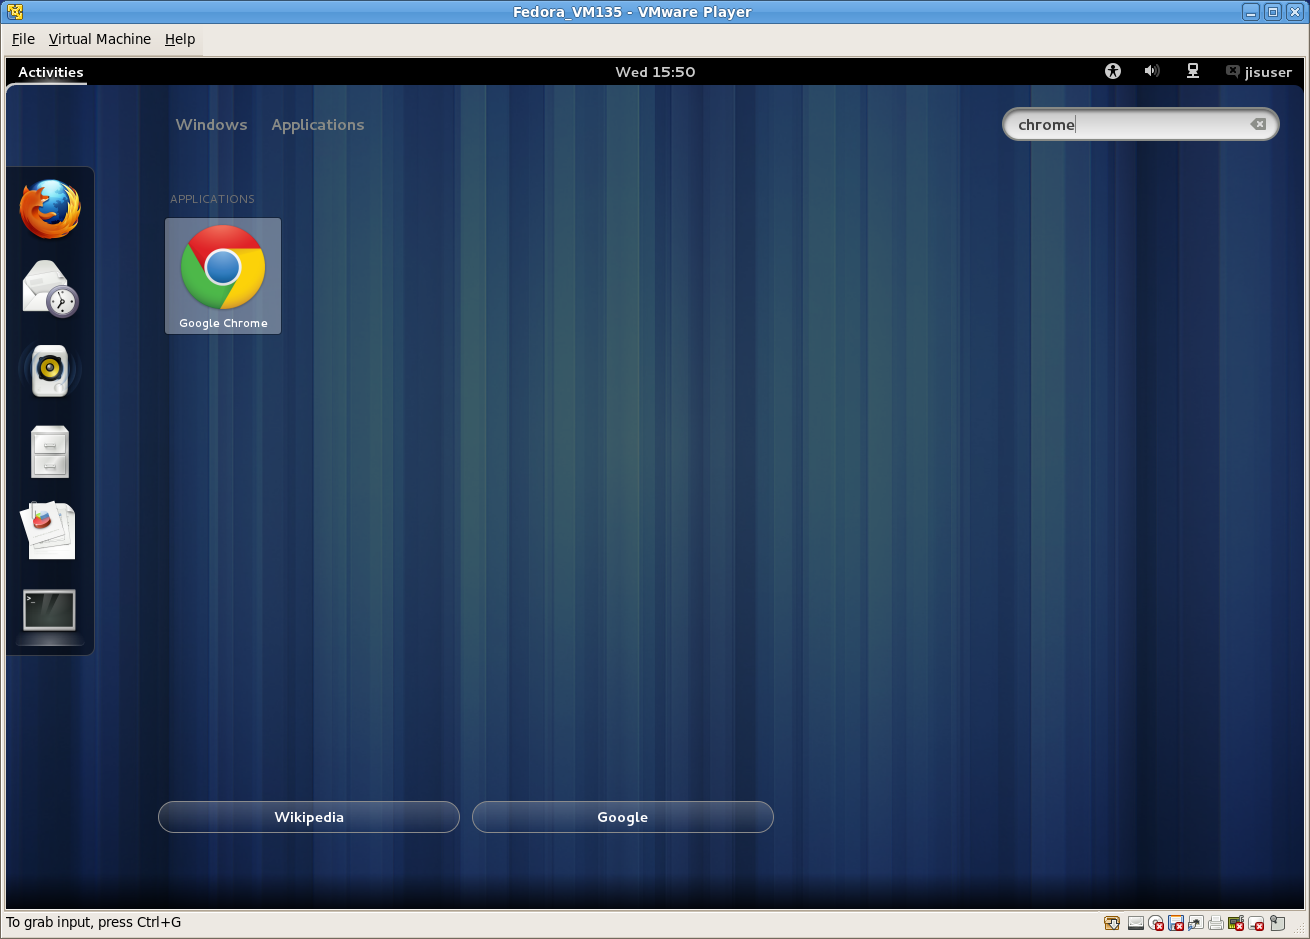 At Work with Linux: Fedora 17 on VMware Player